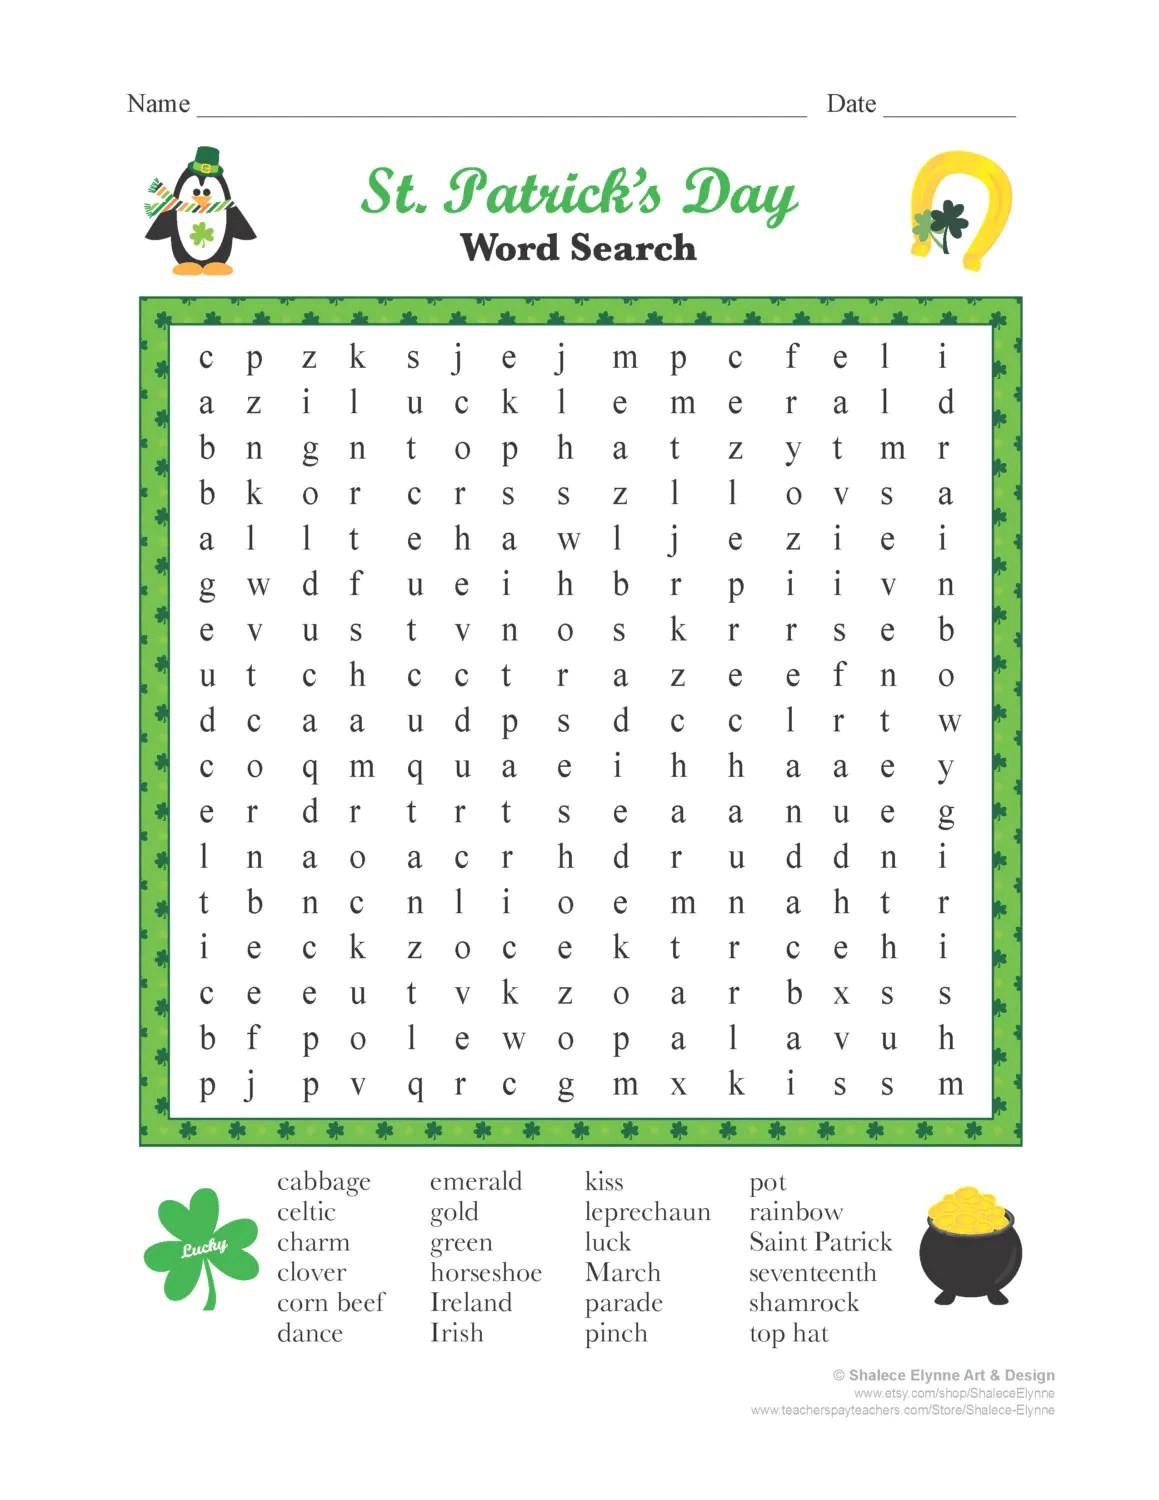 St Patrick S Day Word Search Printable Game Instant